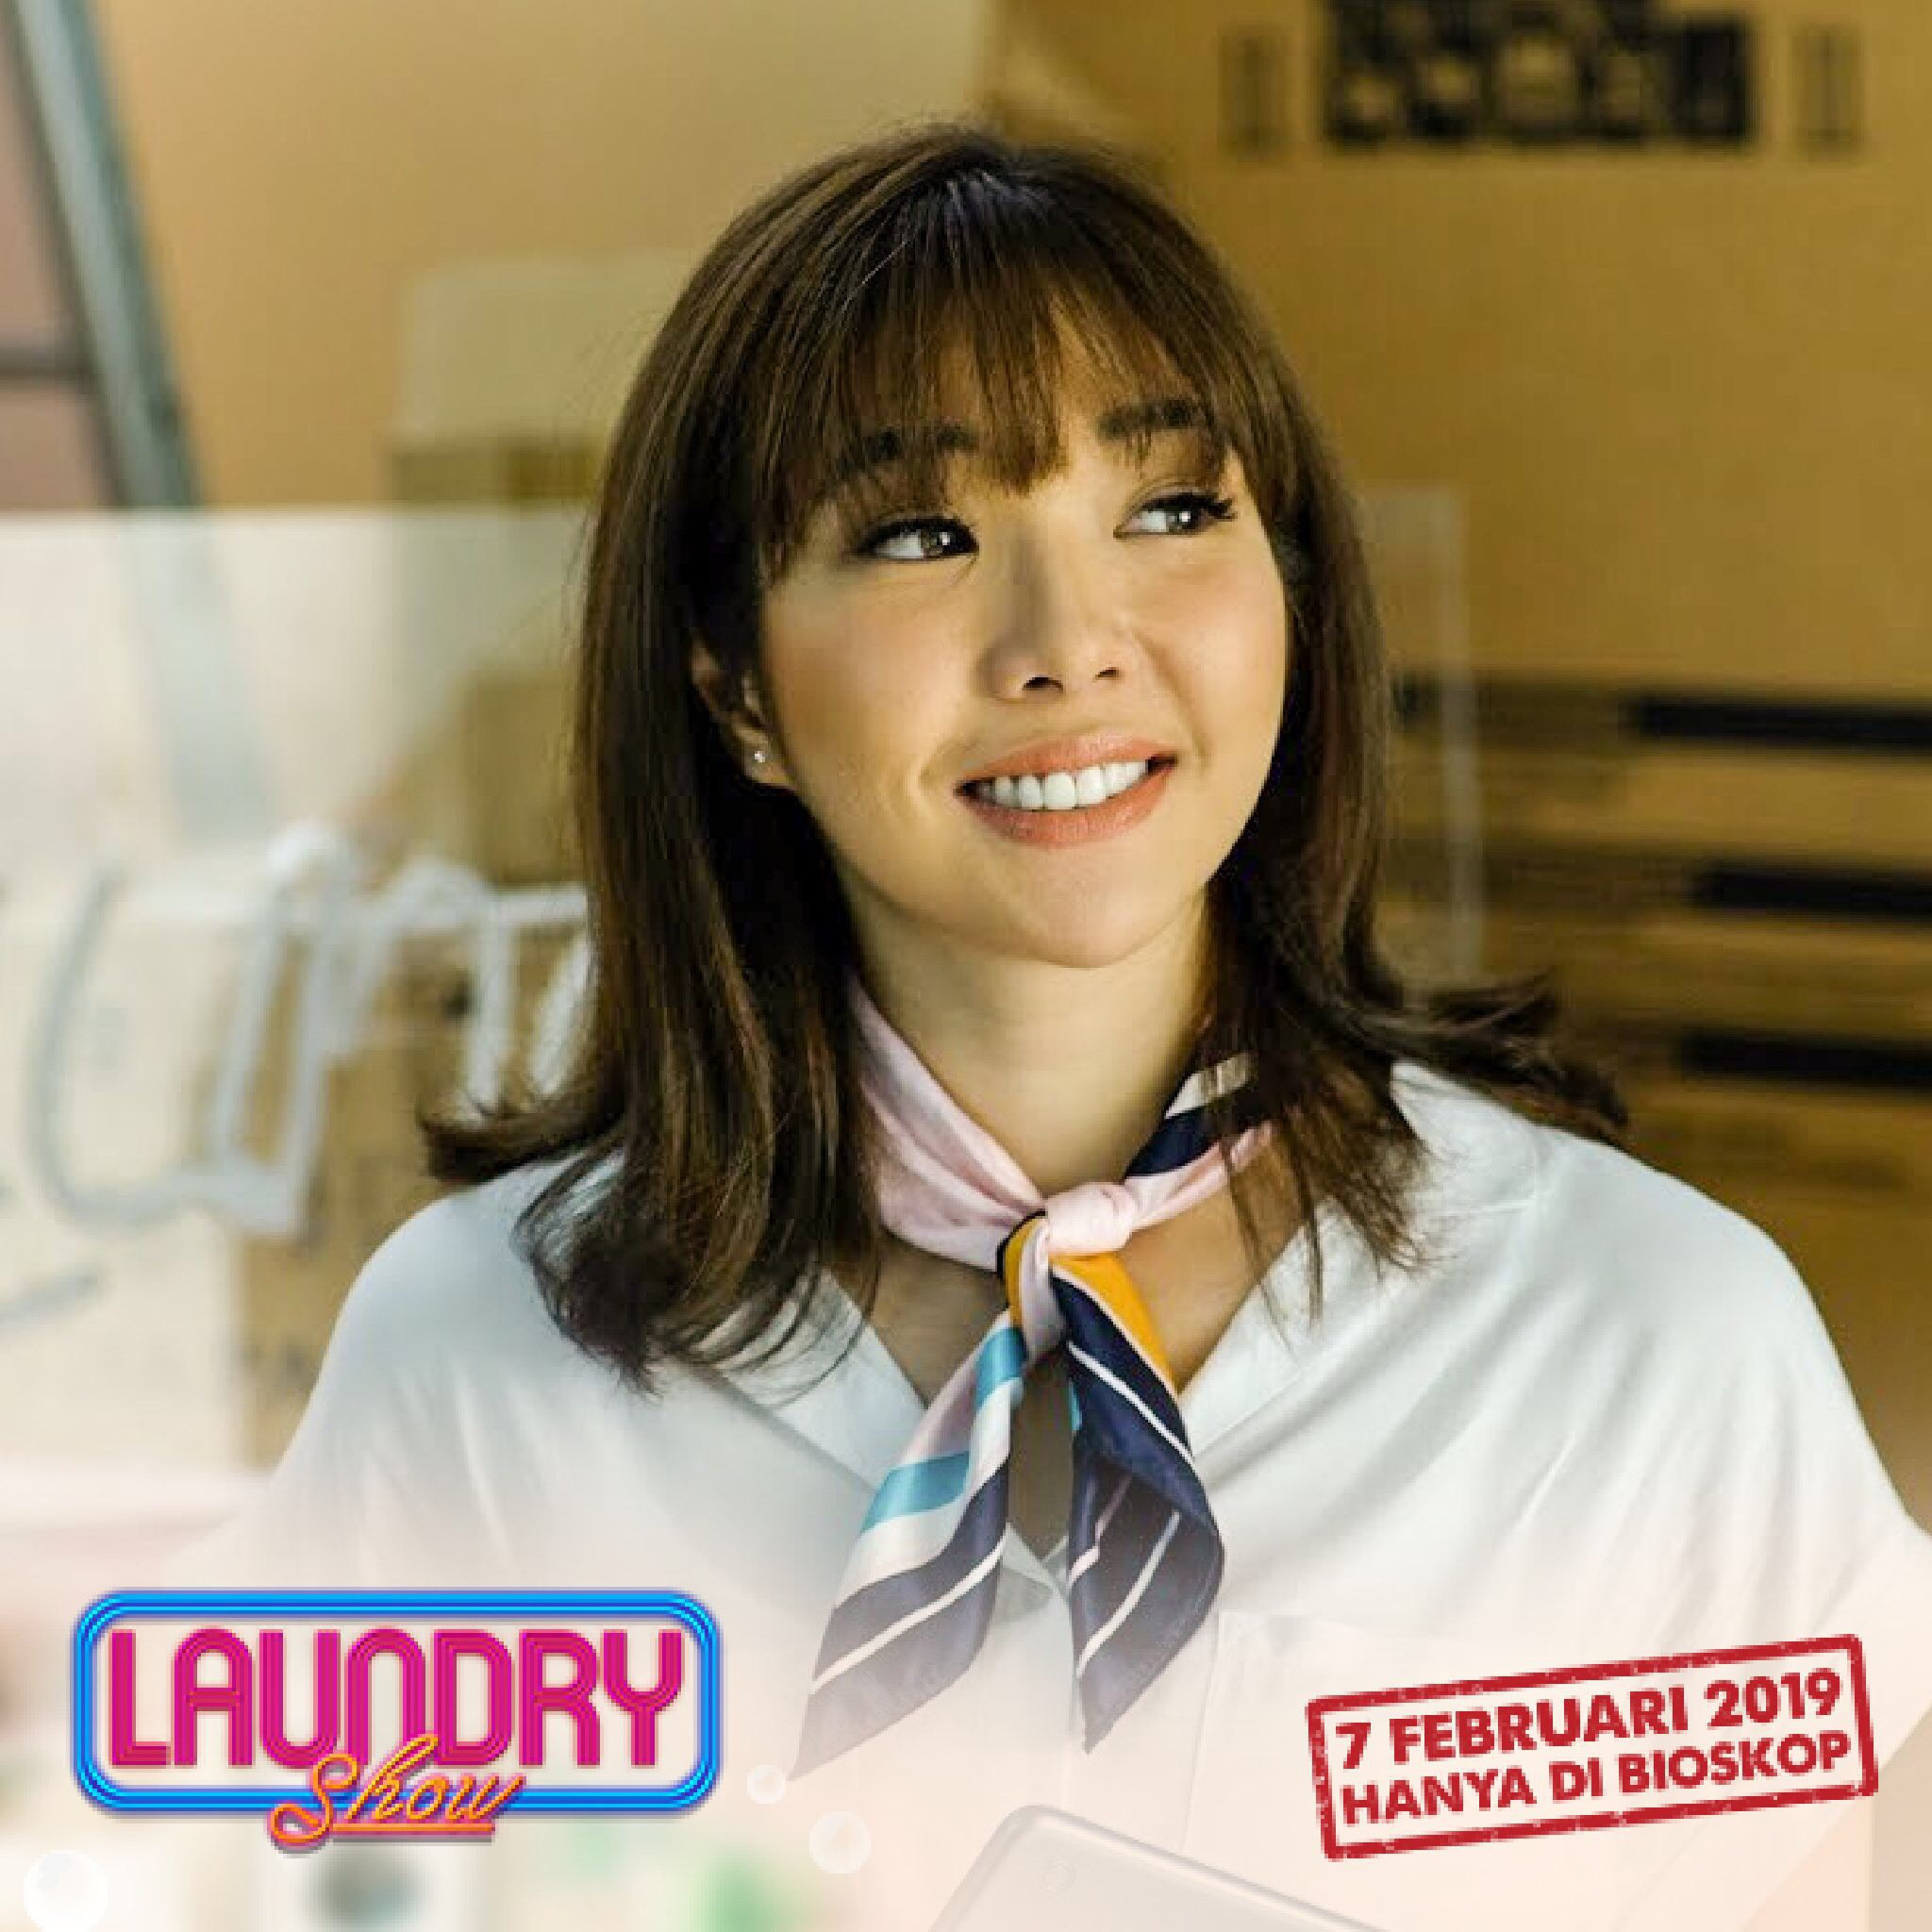 Laundry Show